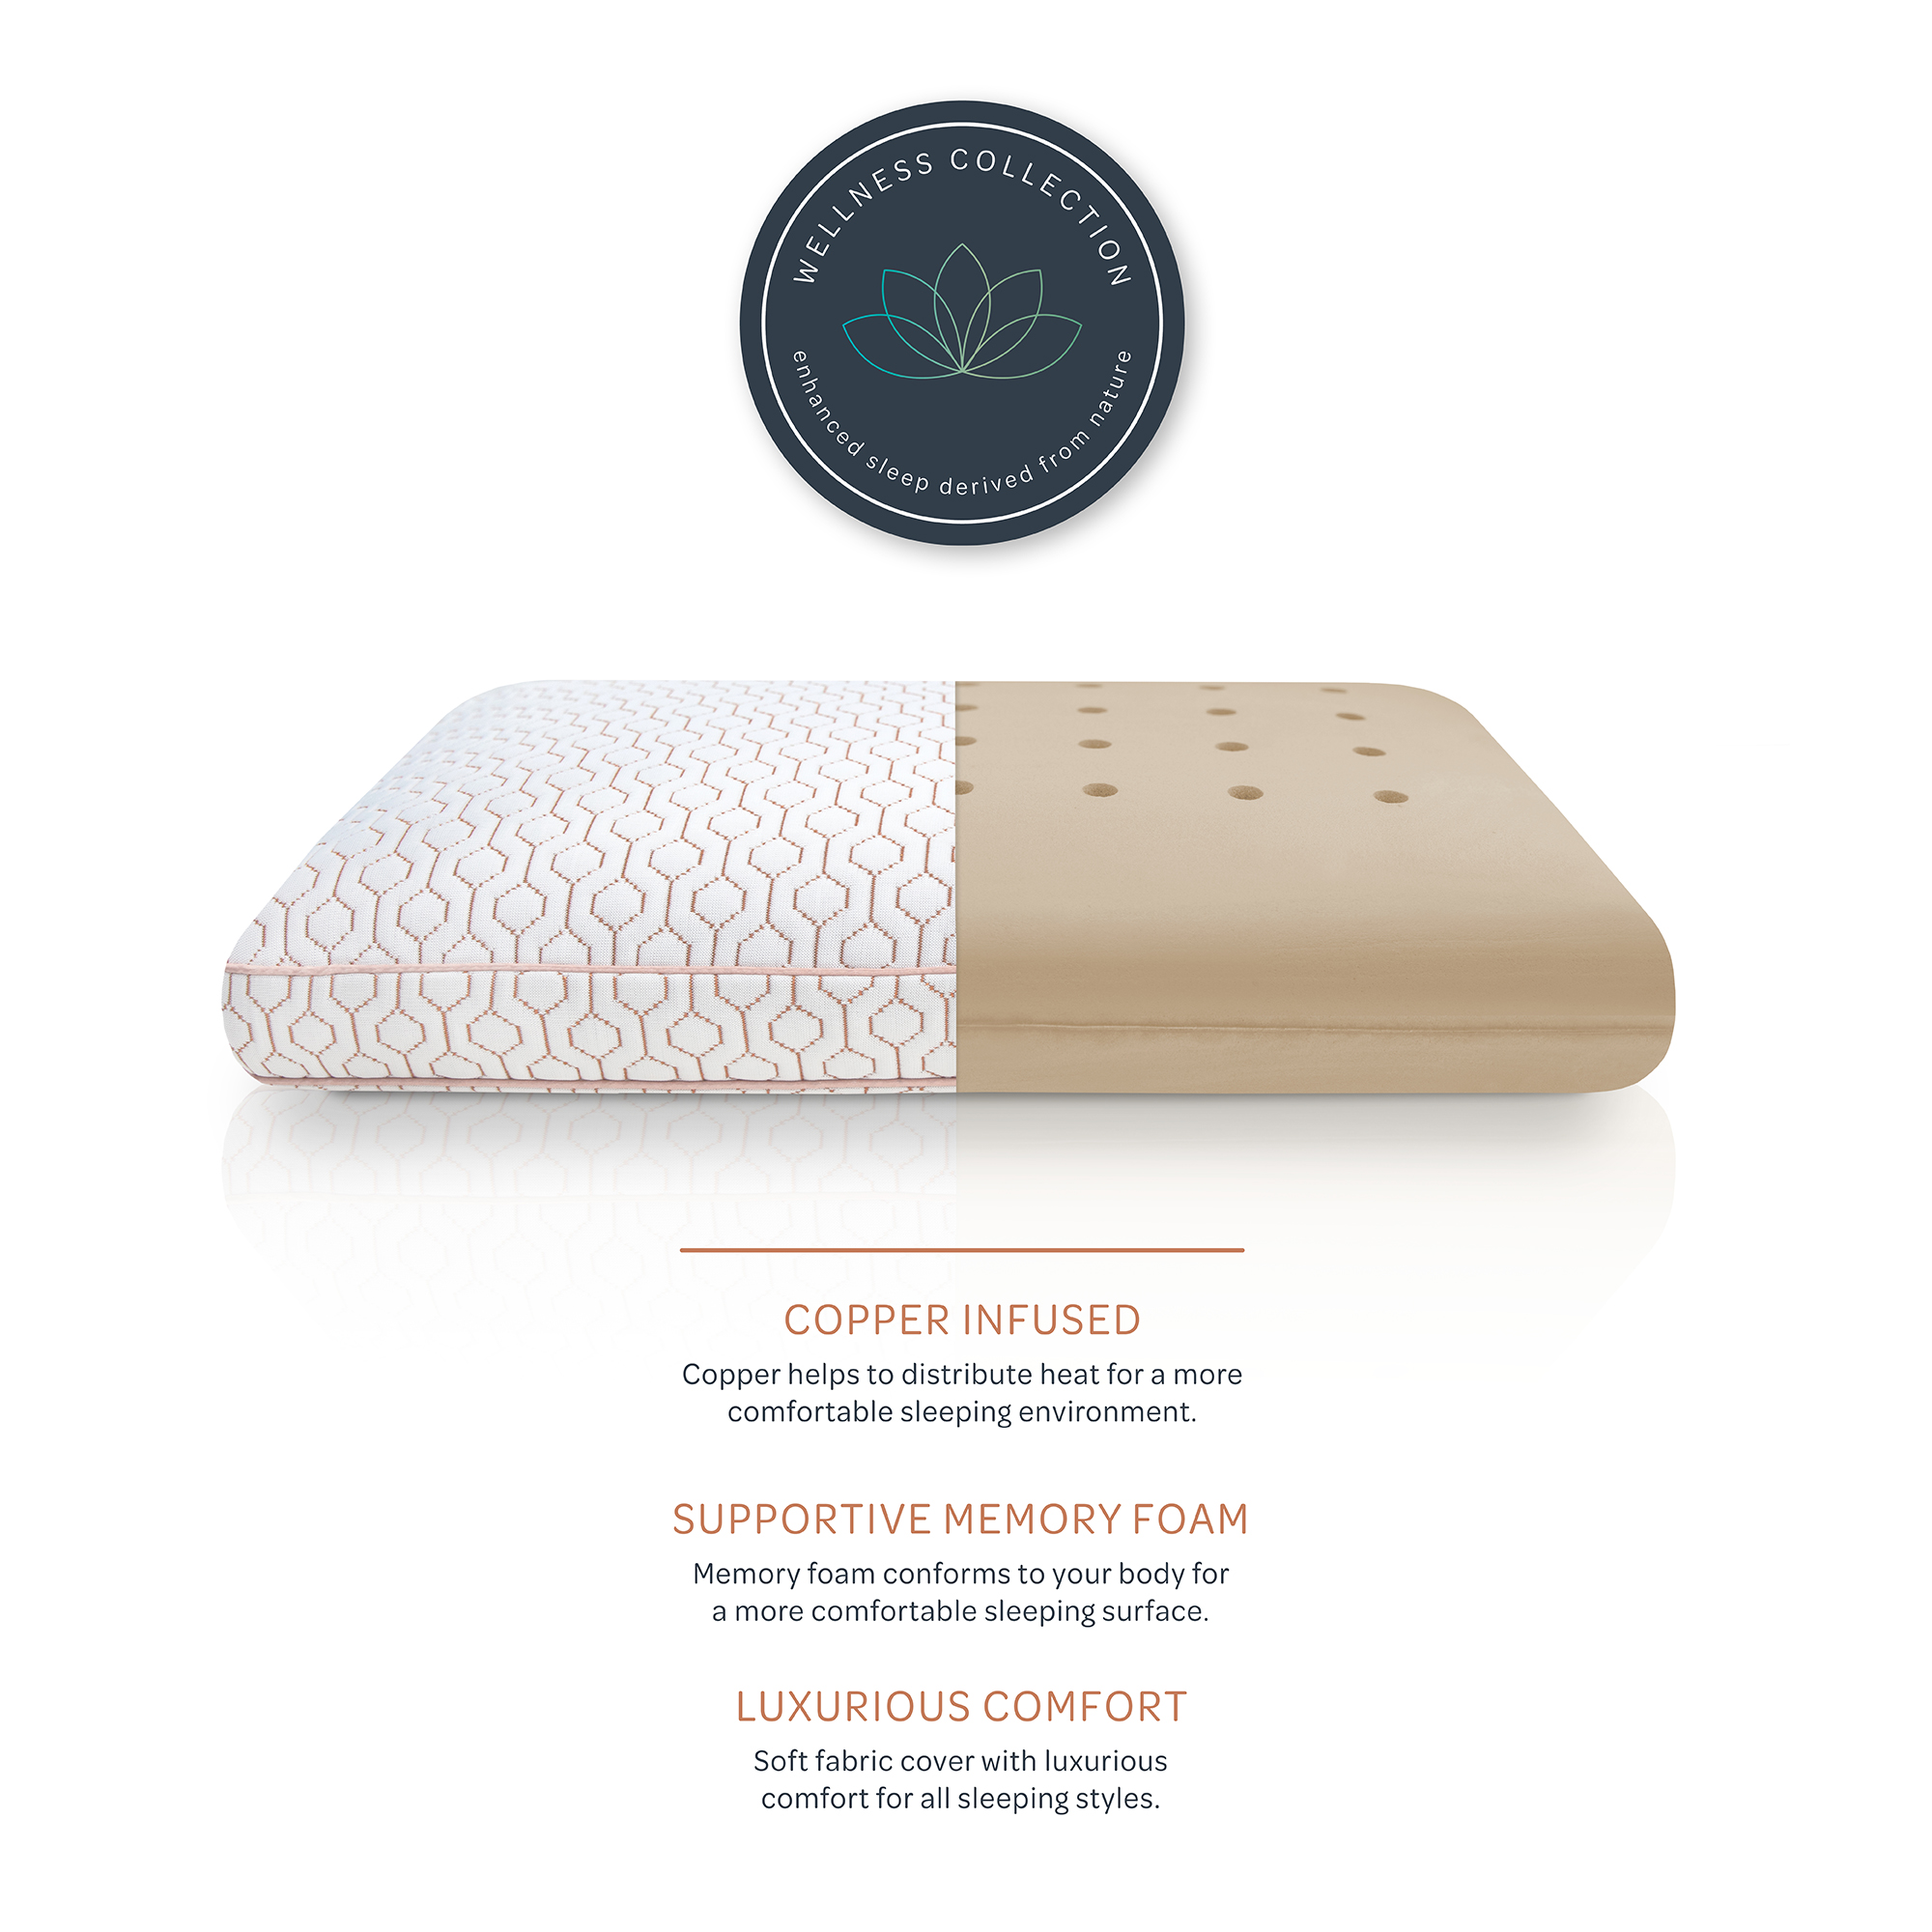 sensorpedic wellness collection copper infused memory foam bed pillow